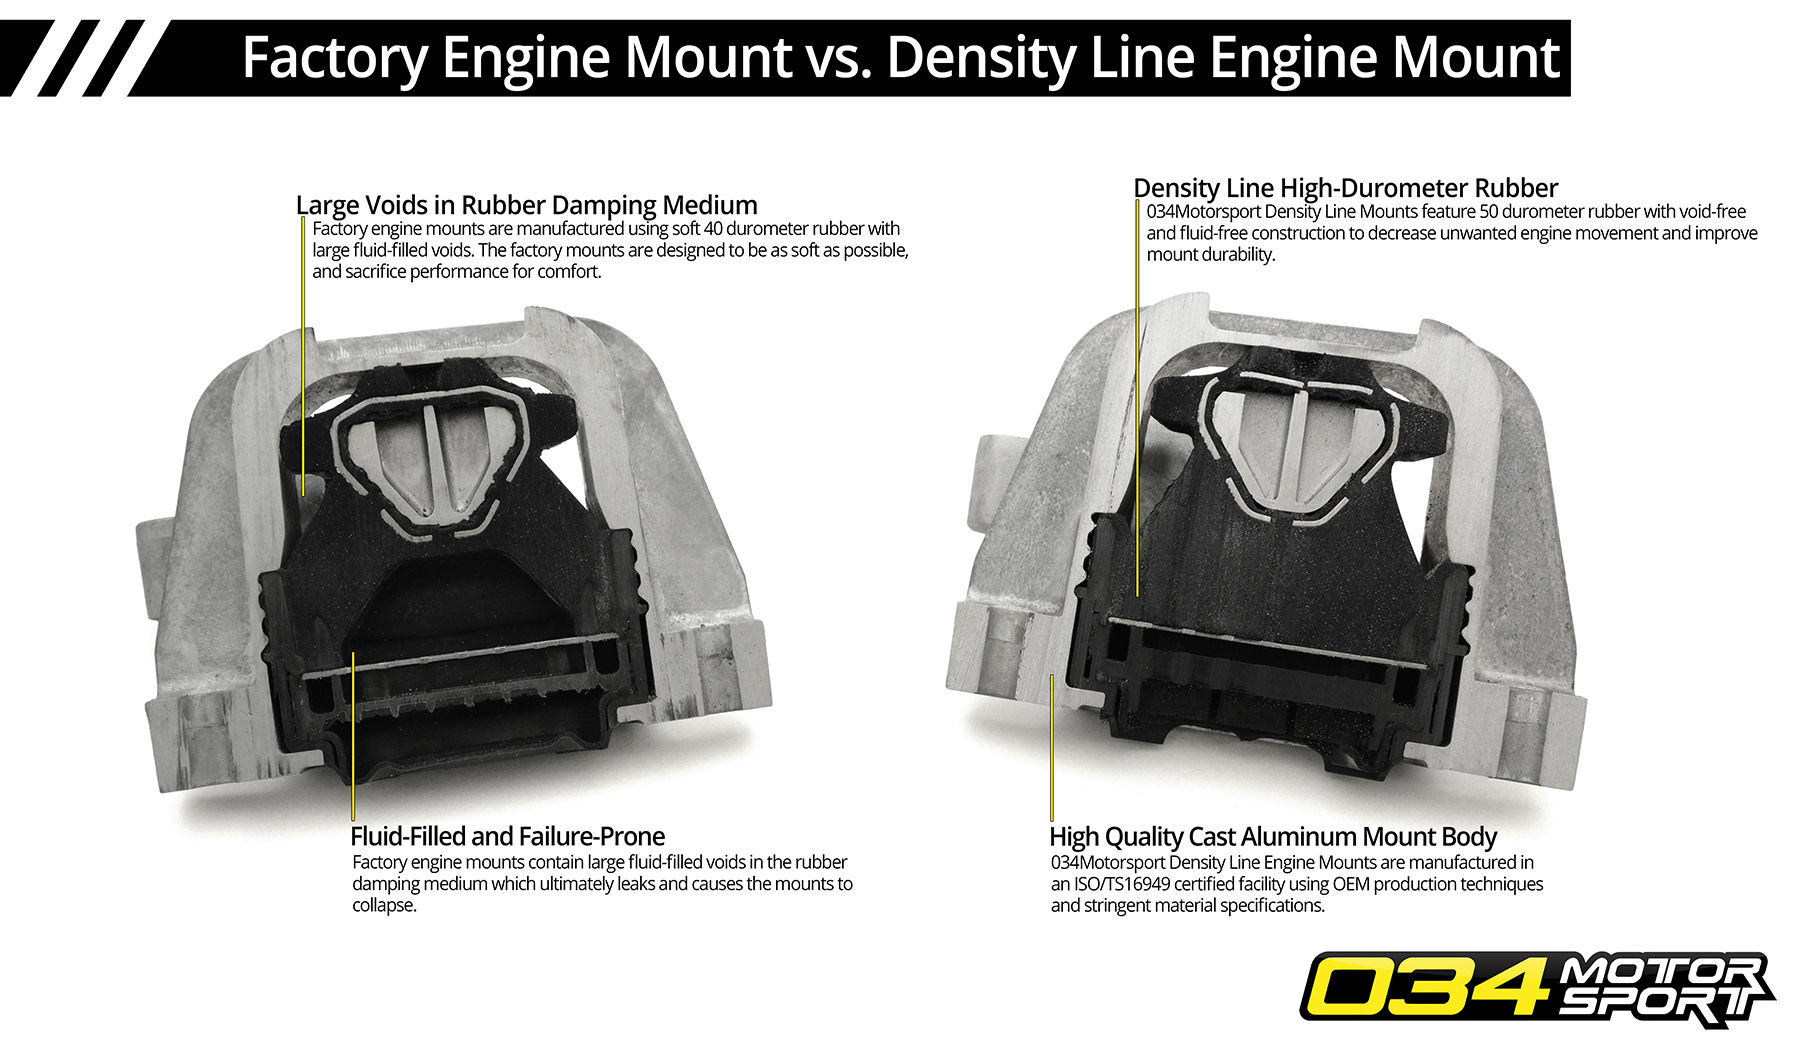 034Motorsport Density Line Performance Engine Mounts for MQB Audi/Volkswagen vs. Factory Mounts